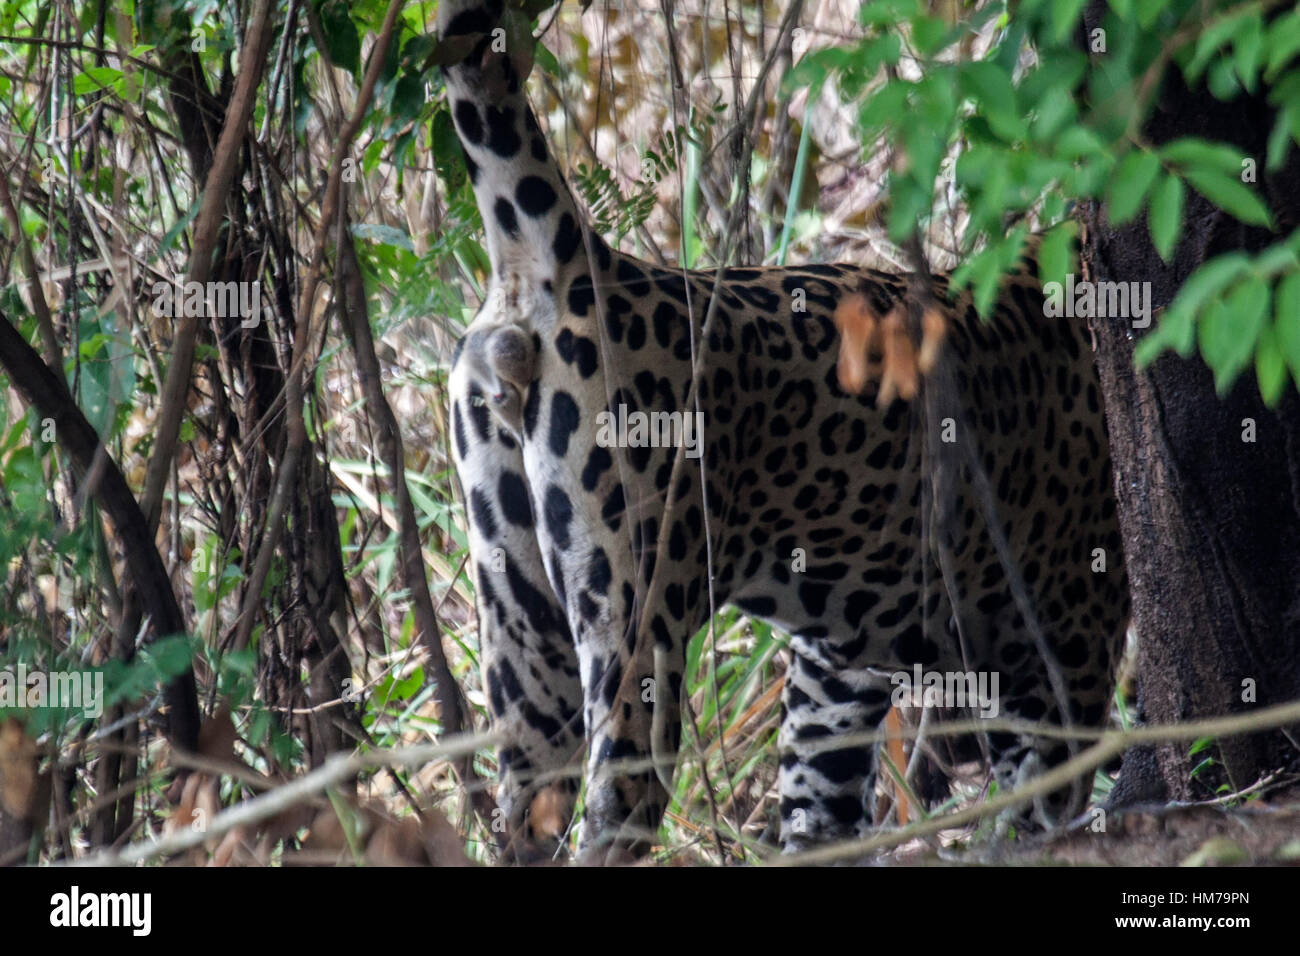 Jaguar spraying scent from its scent gland situated beneath its tail as it marks it territory in Brazil - Stock Image